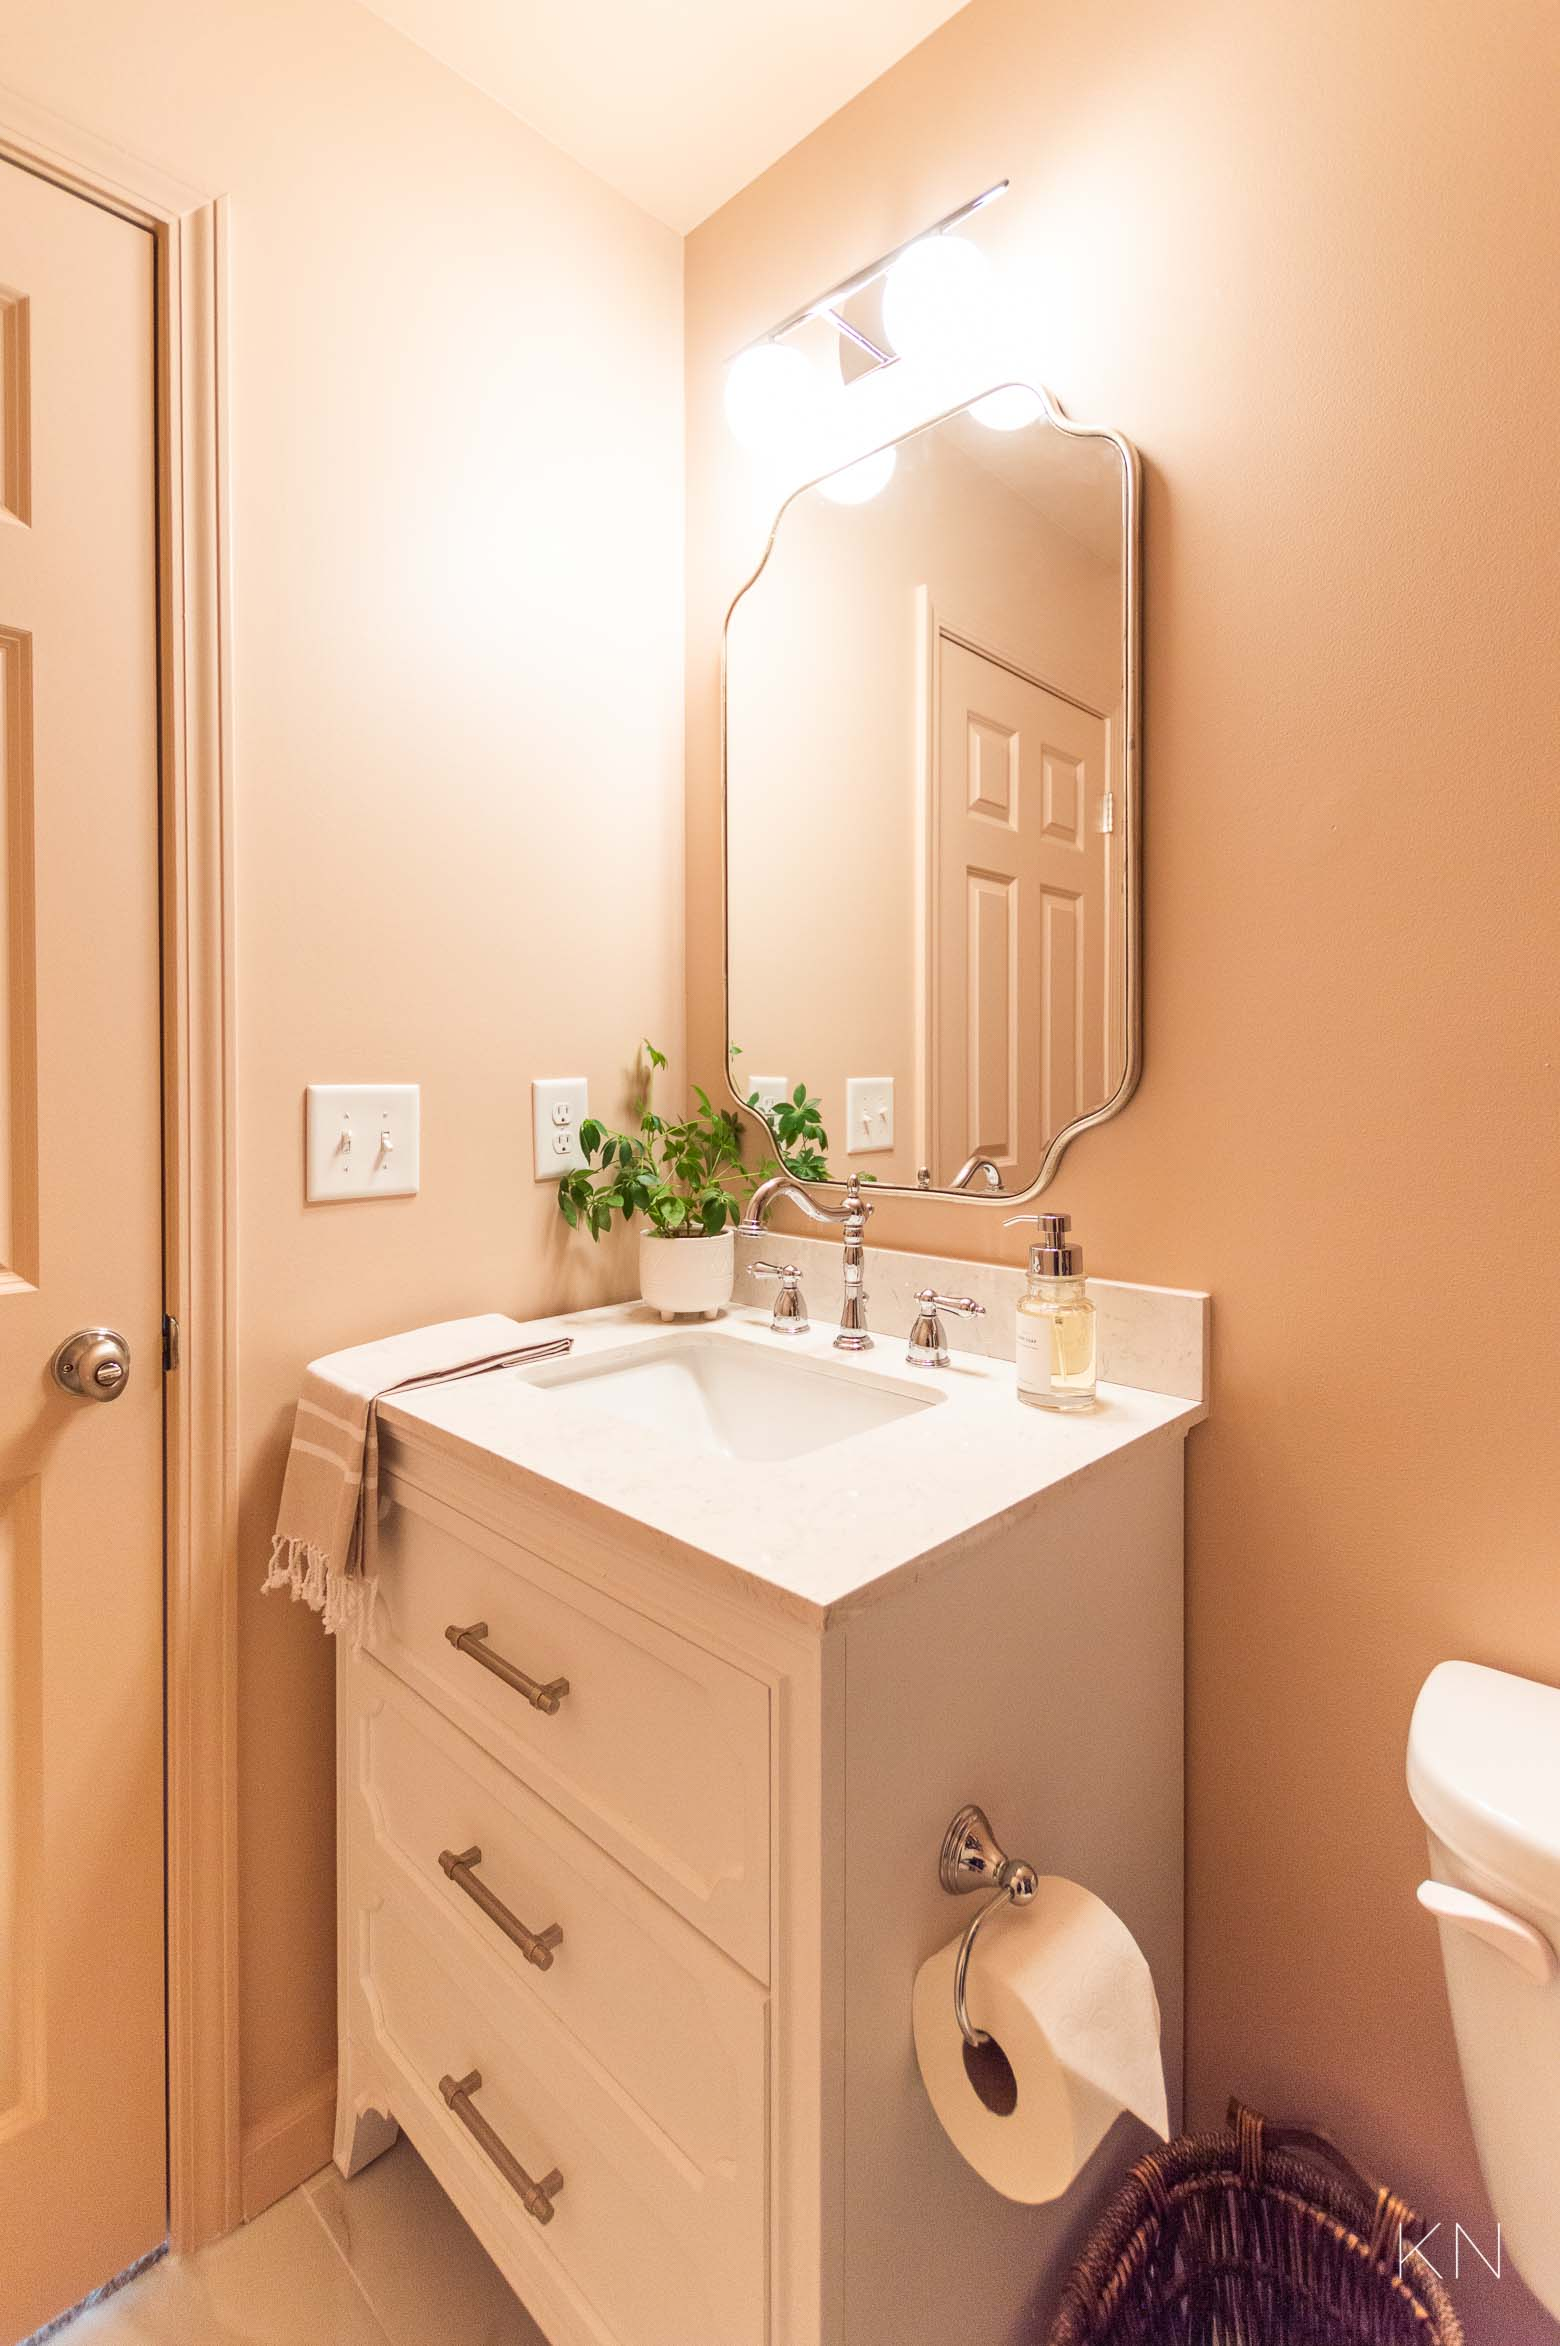 Affordable Small Pink Bathroom Makeover Reveal and Remodel